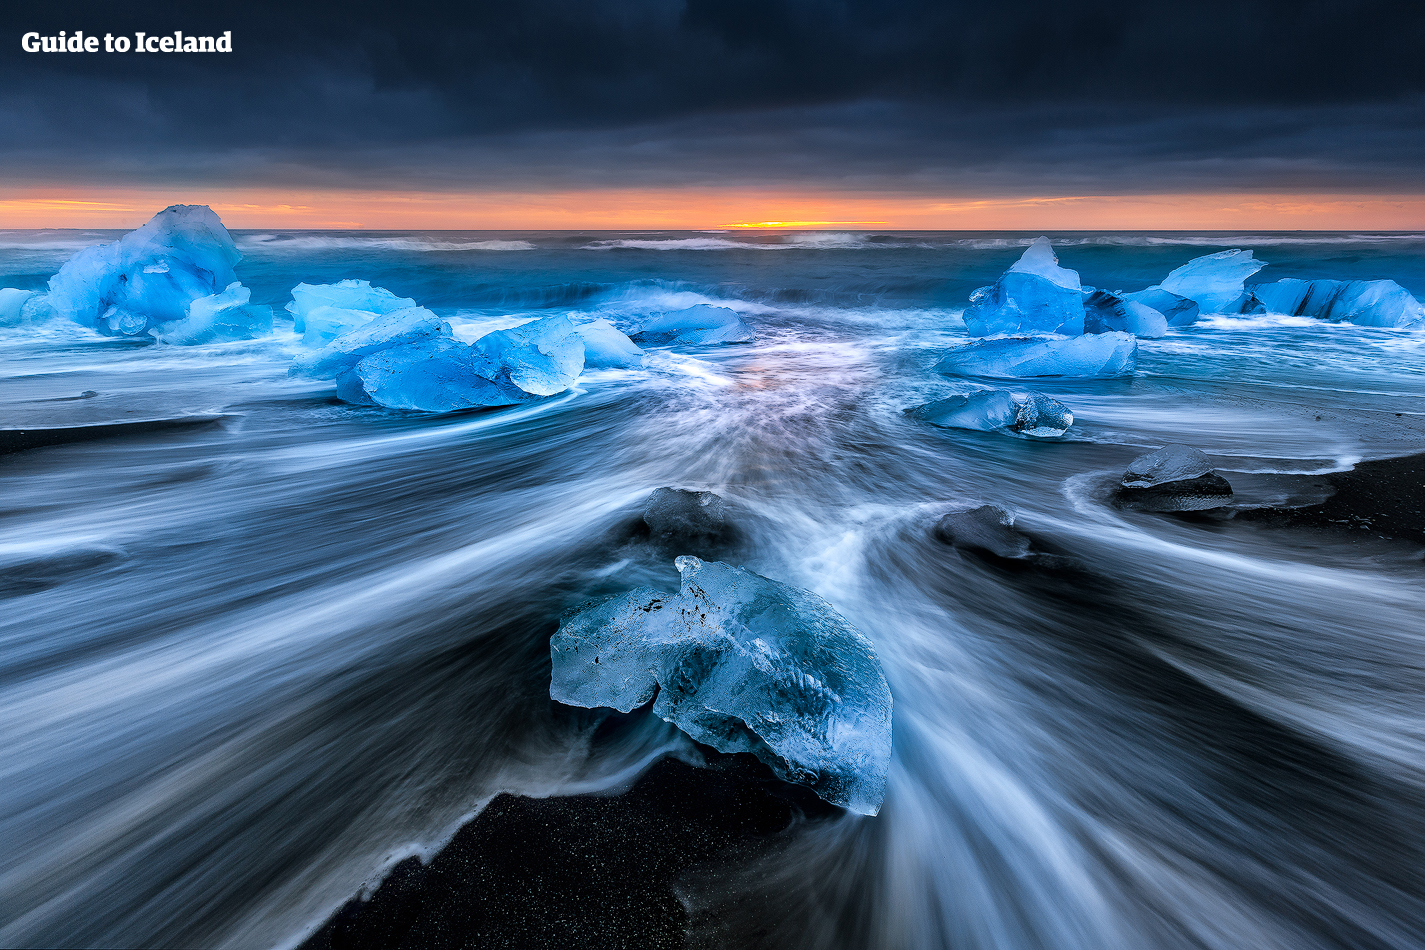 Reviews For Blue Car Rental In Iceland